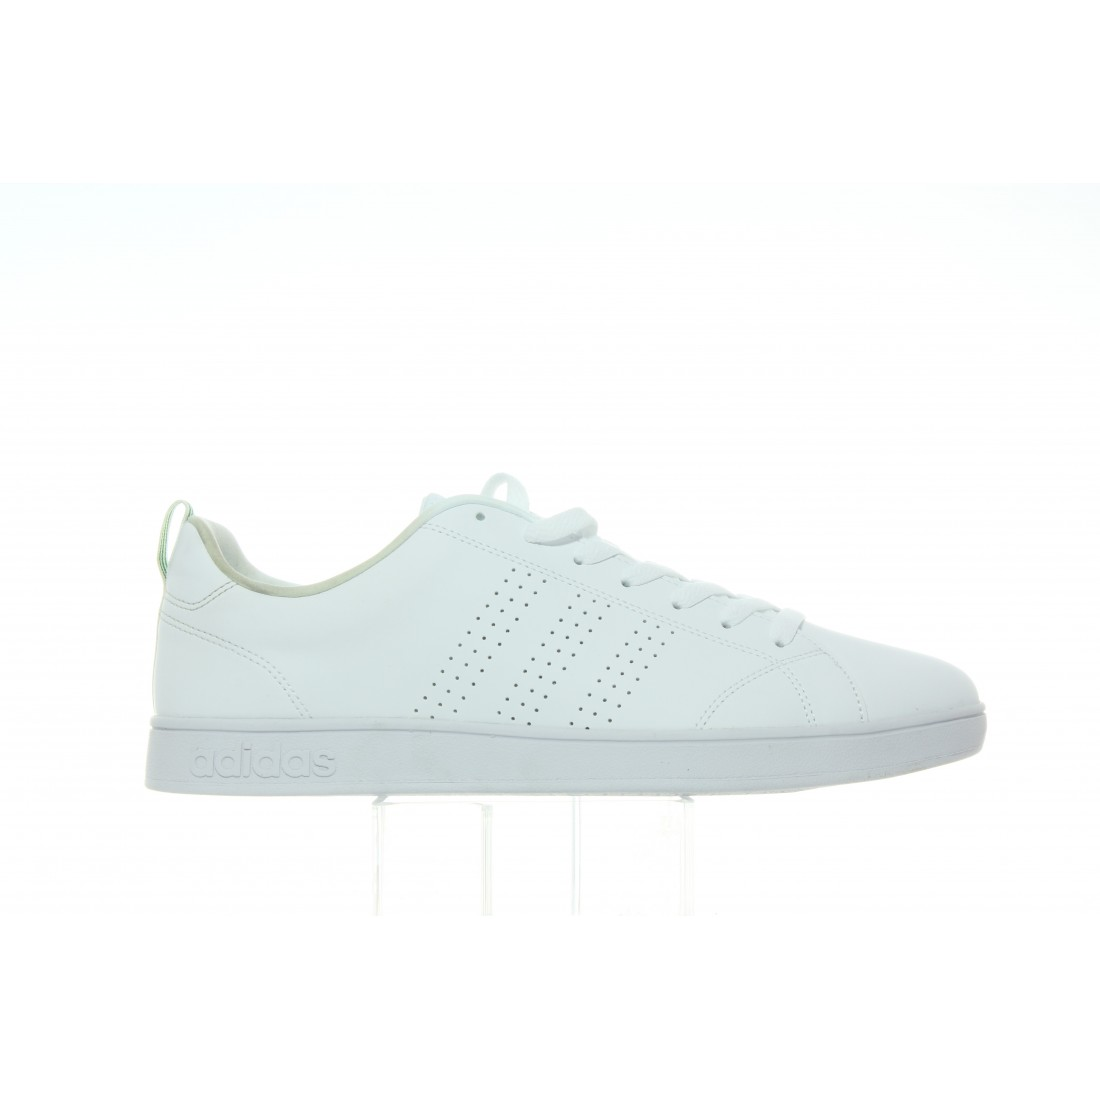 ... Sneakersy Adidas Advantage CLean VS F99251. Obniżka. F99251 5de2d747bbe68